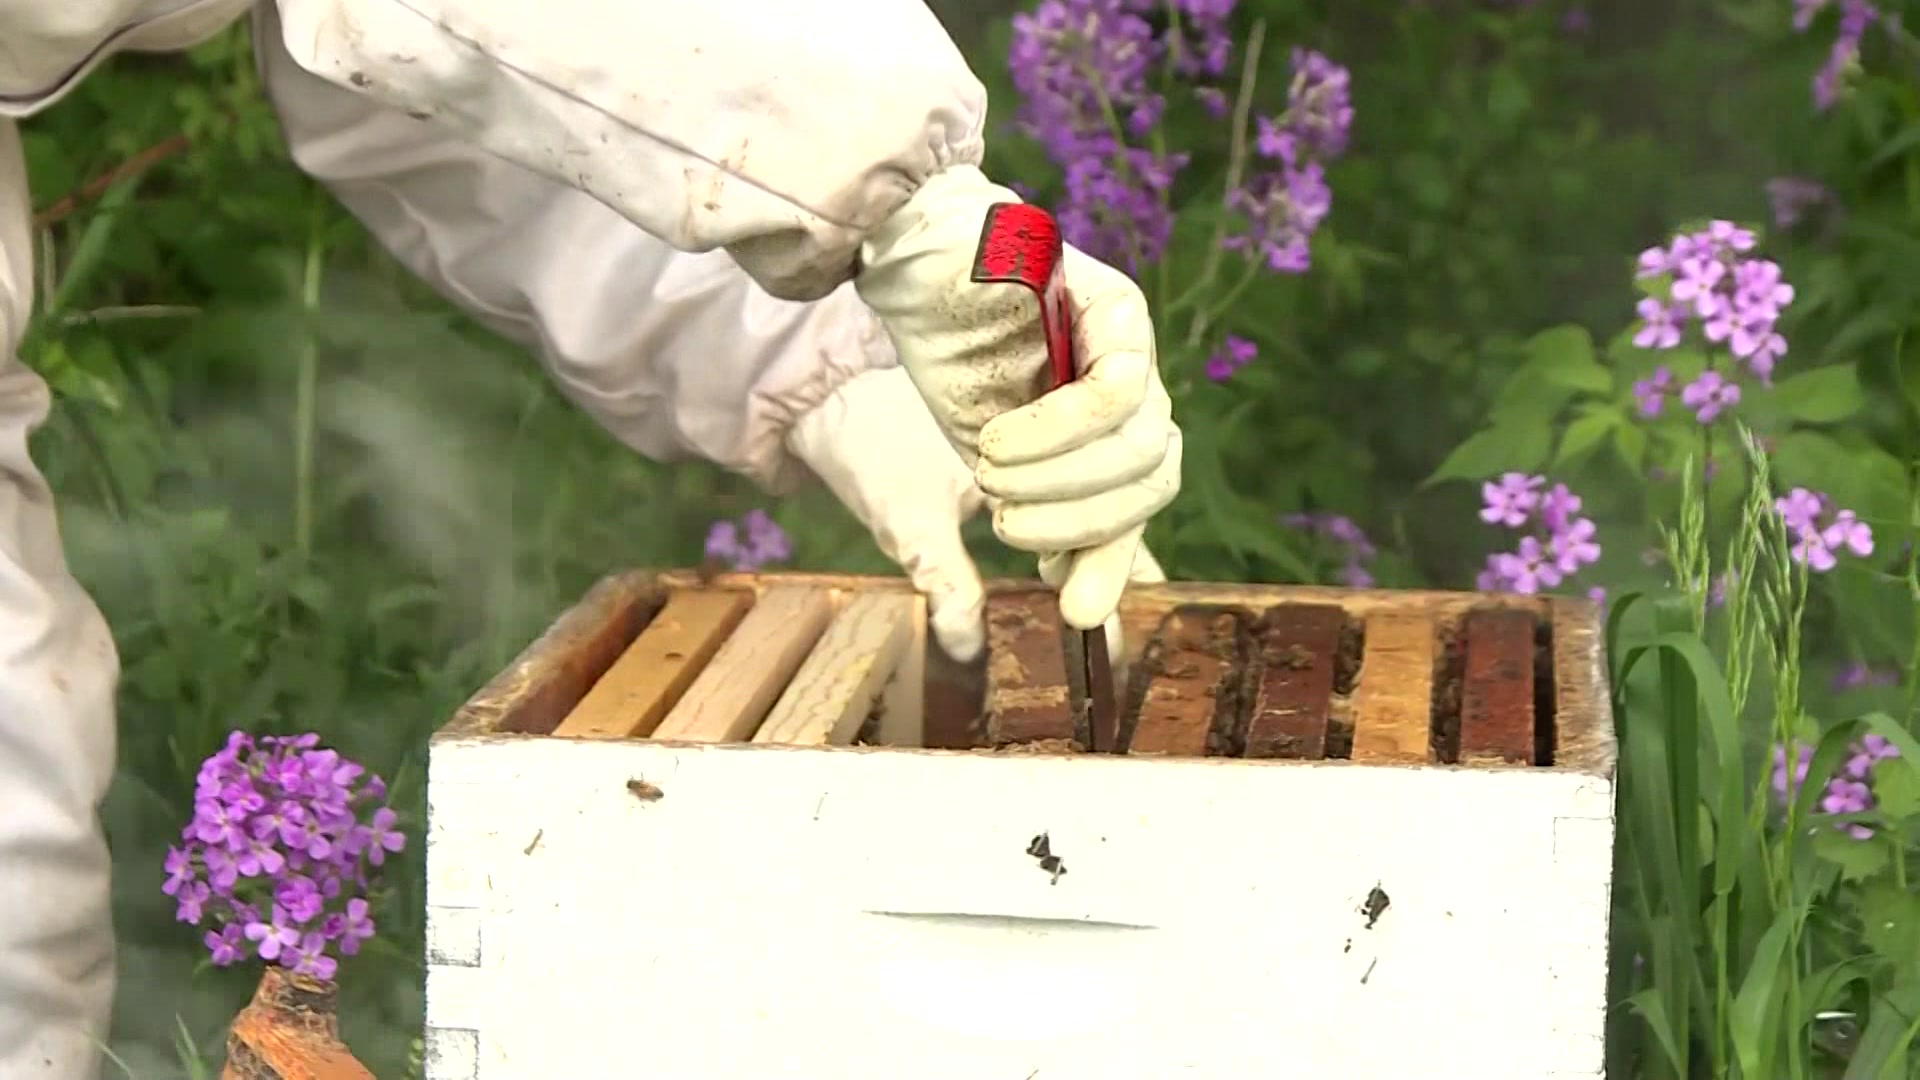 Lawmakers introduce legislation to save the bees